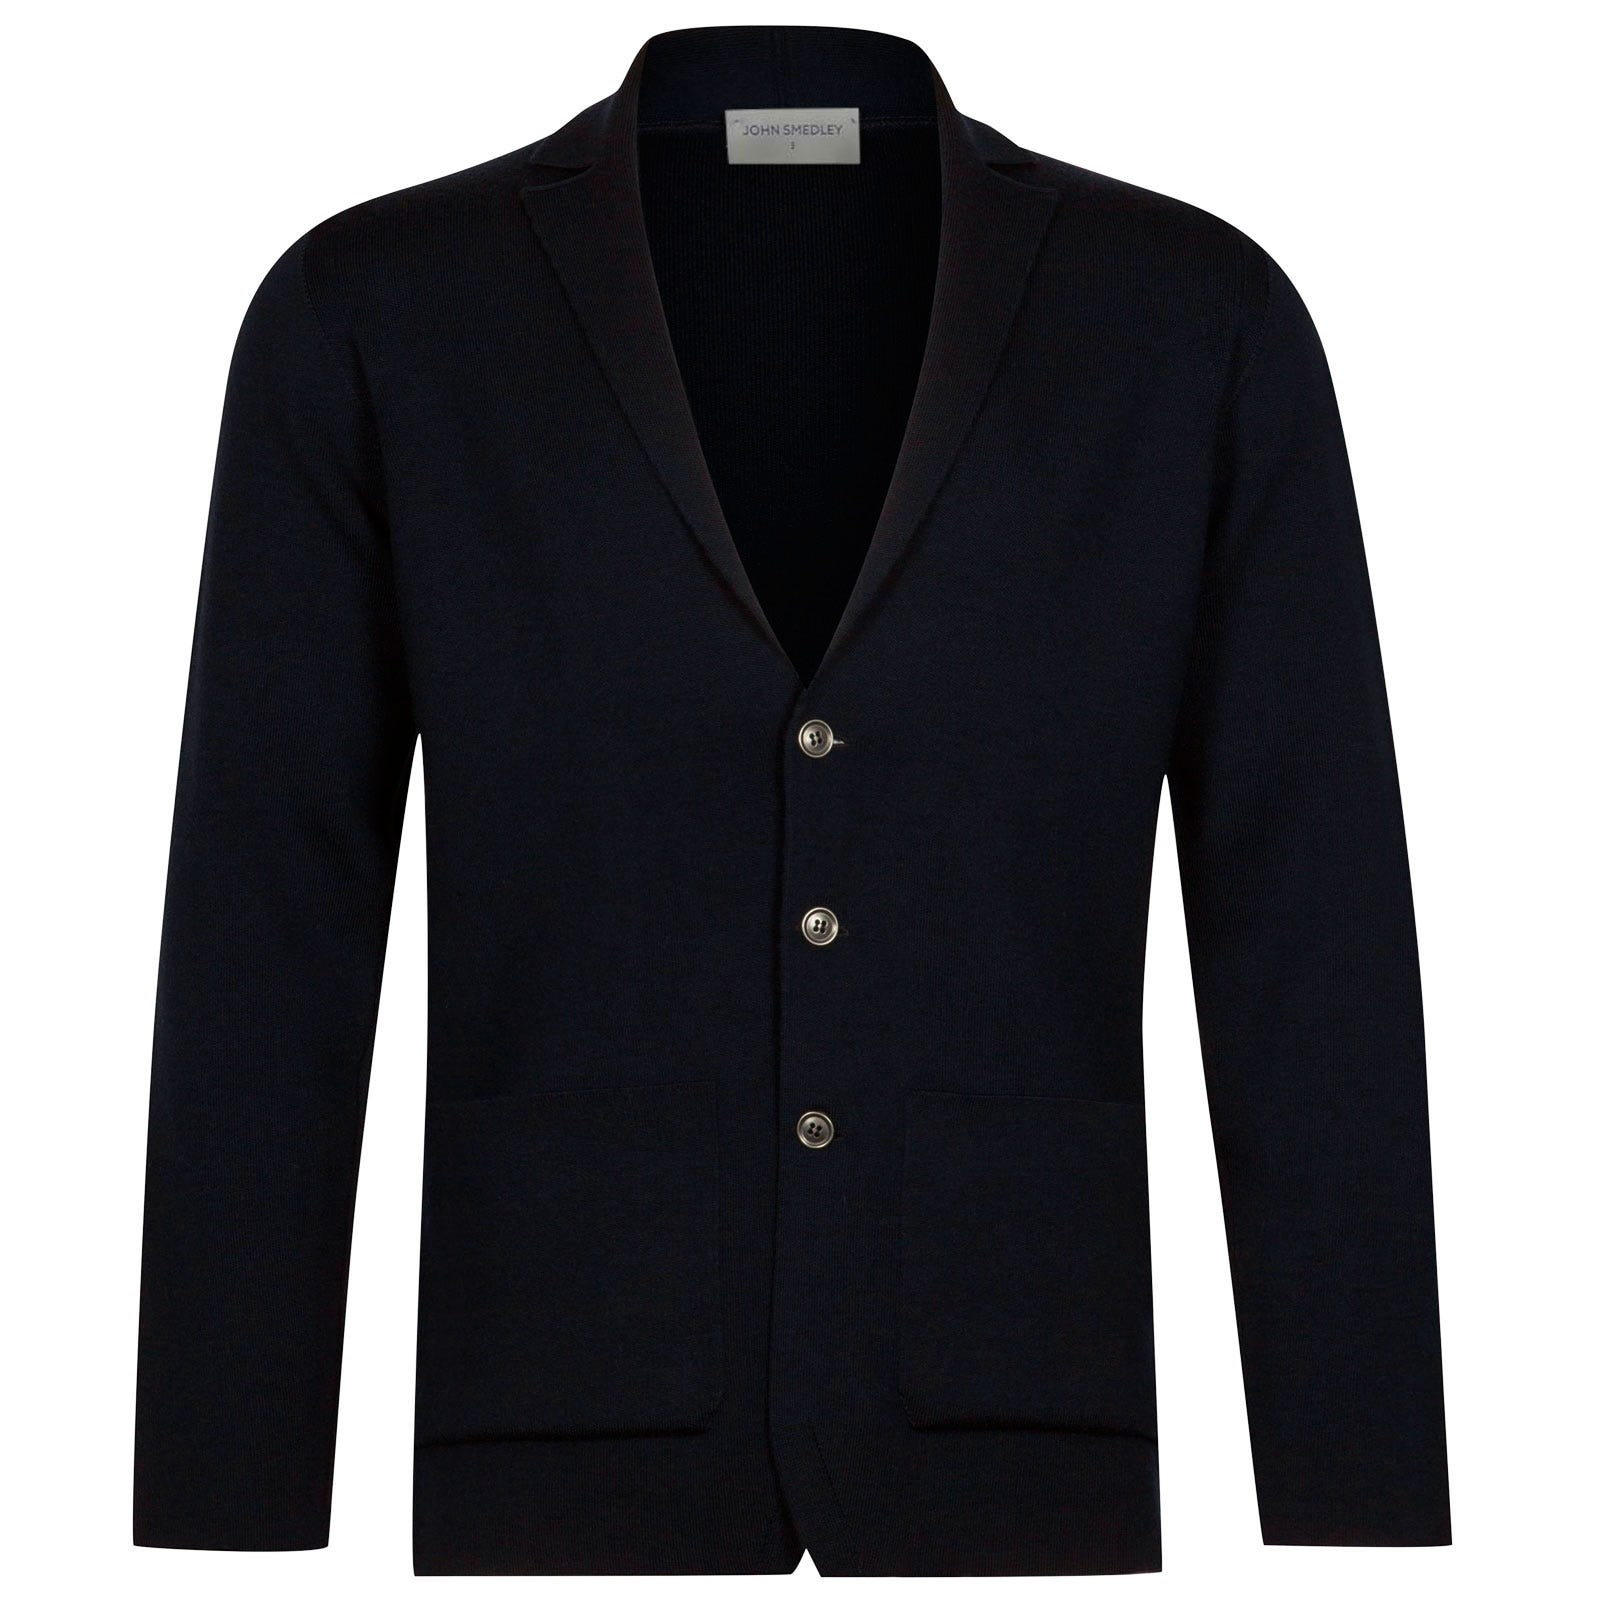 John Smedley Oxland Merino Wool Jacket in Midnight-L